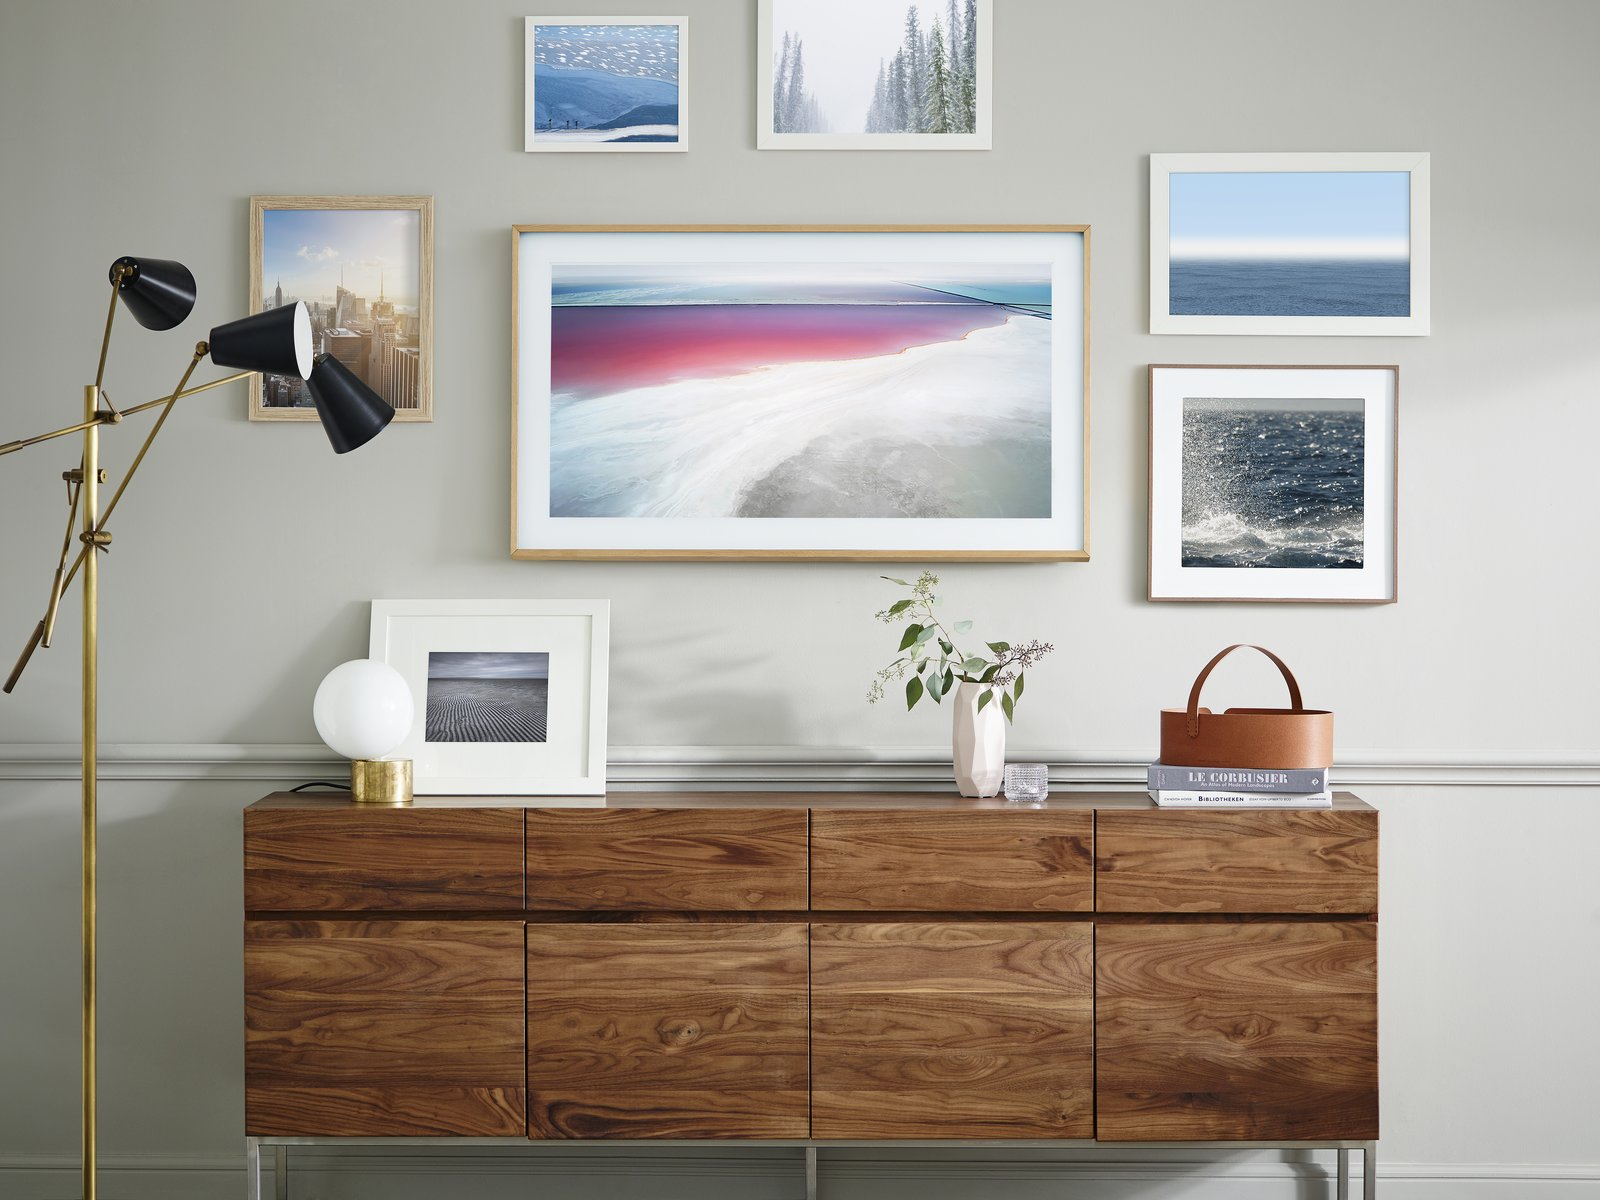 Rather than allowing your TV to take up valuable wall space while not in use, you can now bring a multifunctional and inspiration art gallery to your home that you can enjoy each and every day.